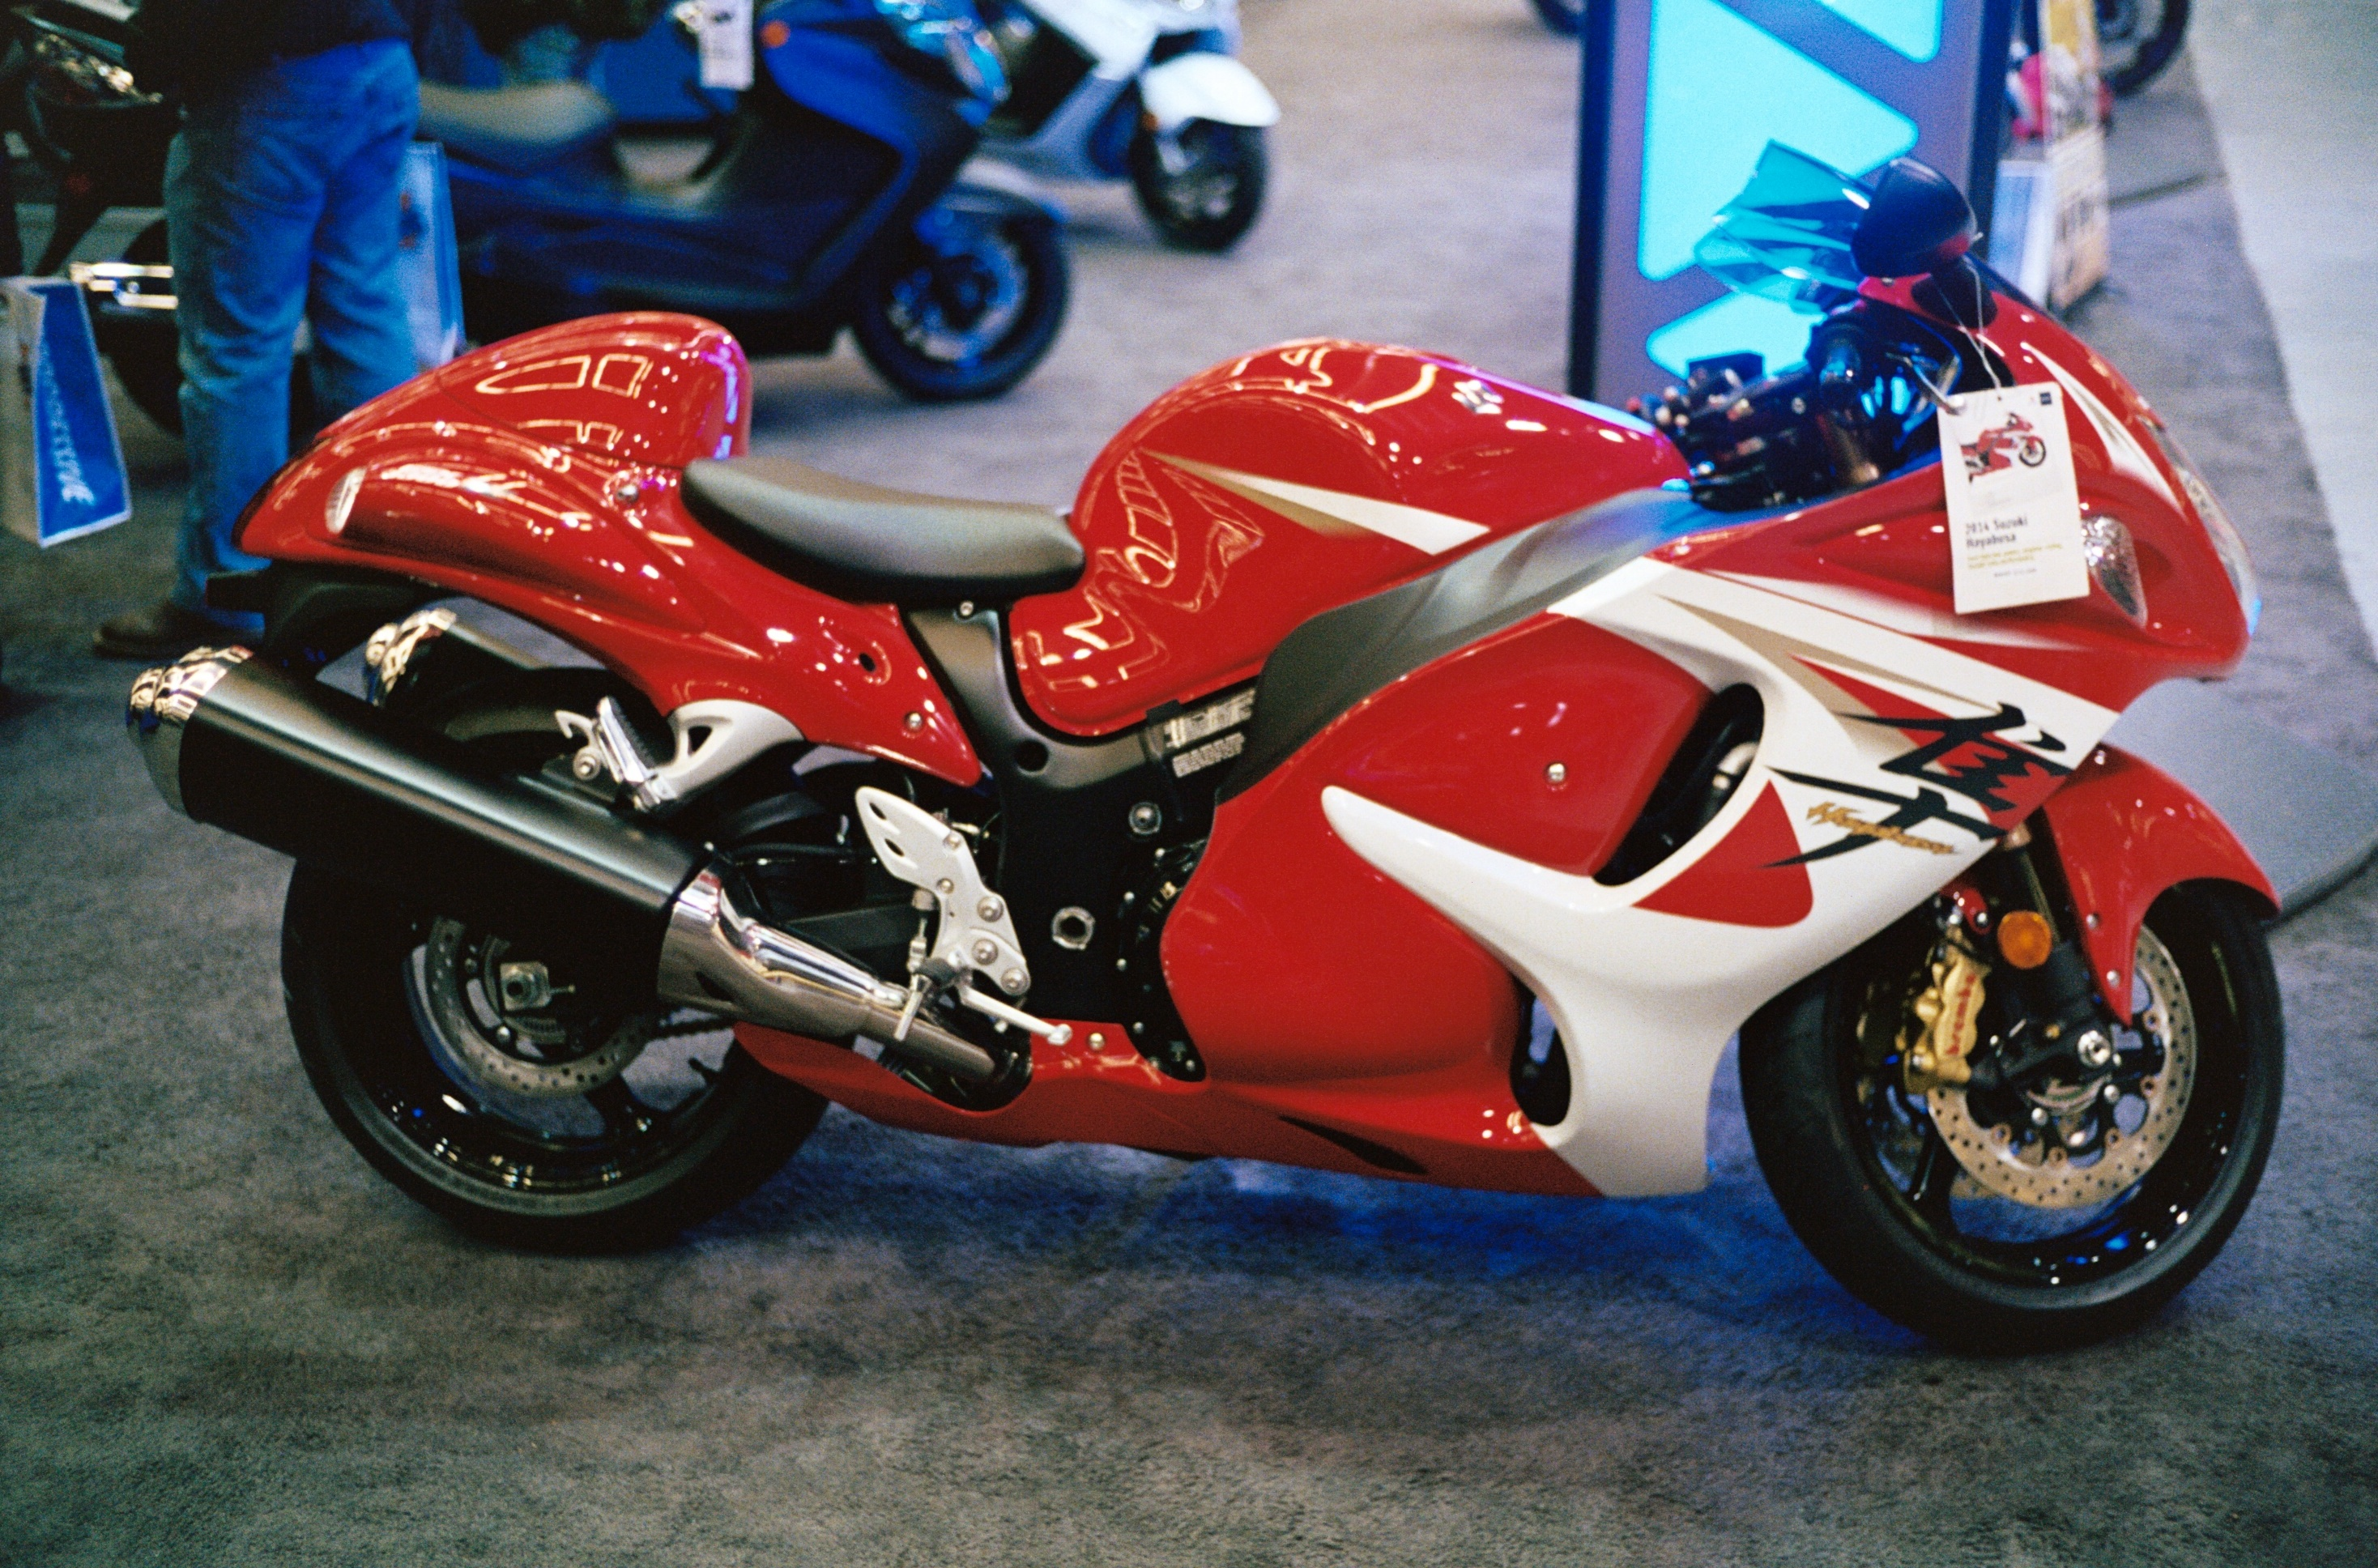 Description 2014 Suzuki Hayabusa red right.JPG